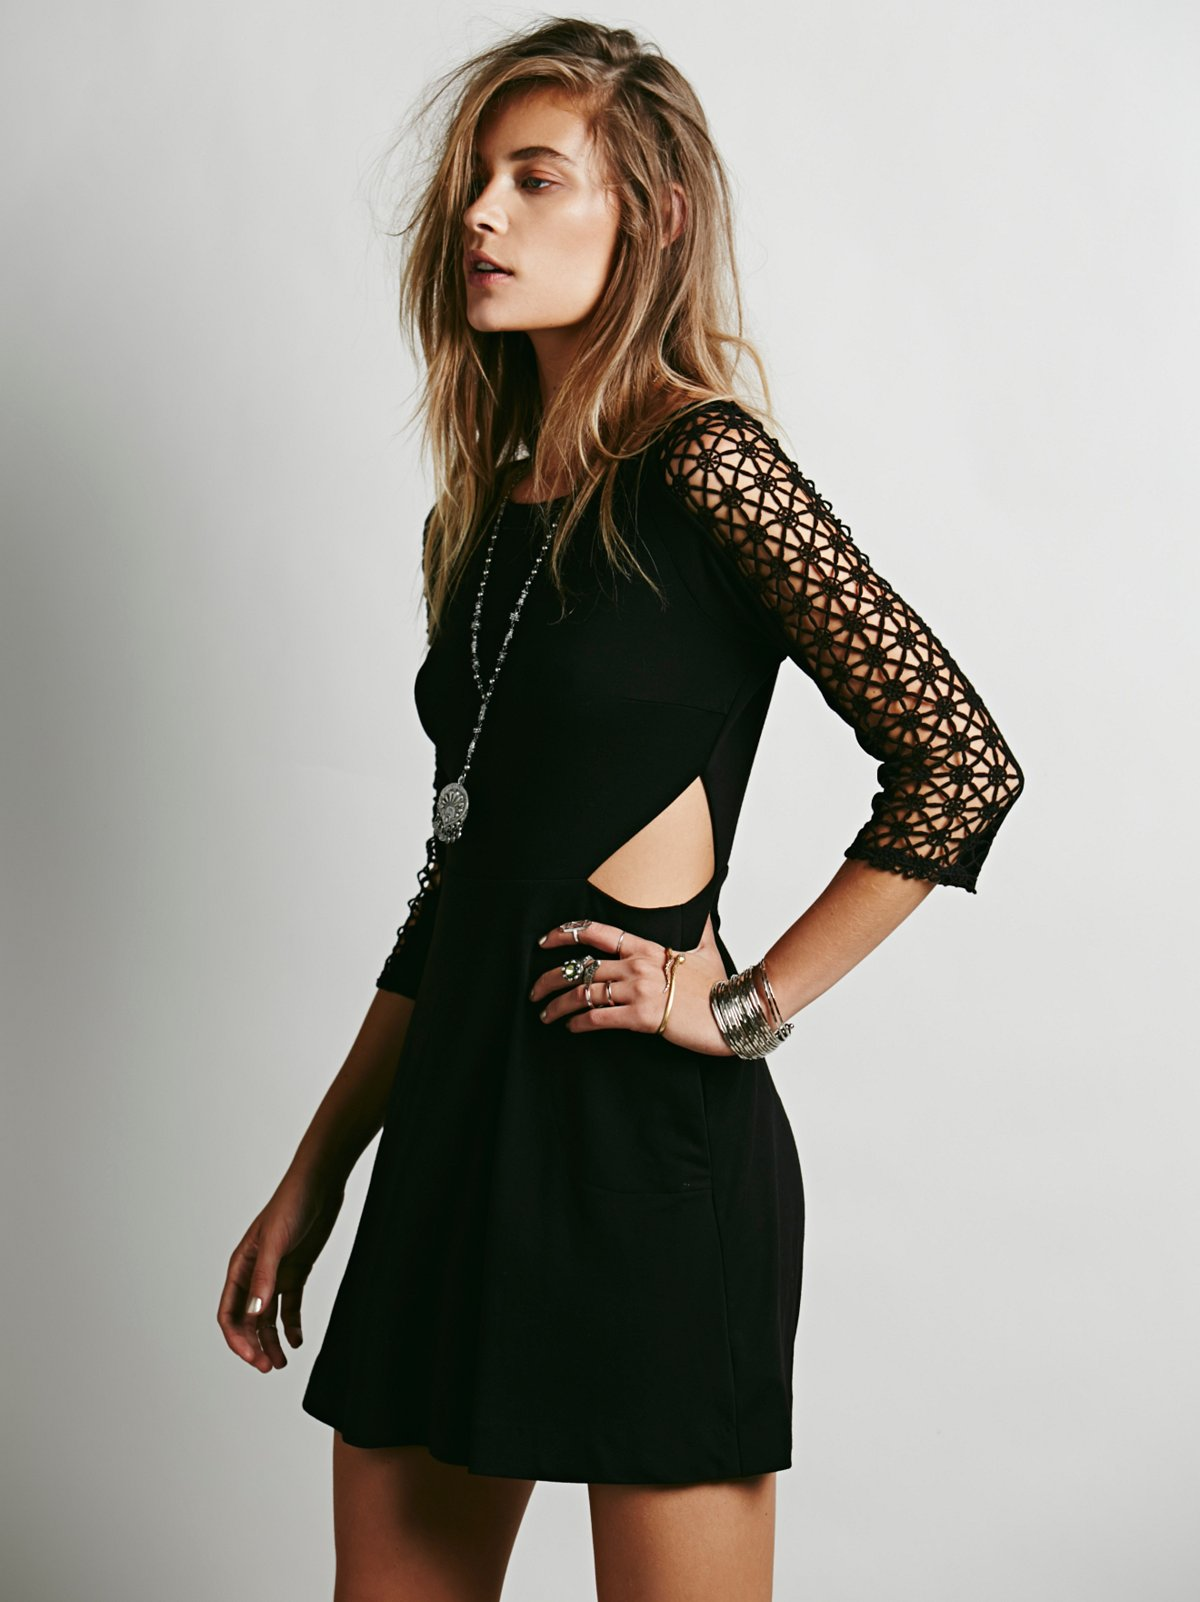 Life in the Fast Lane Cutout Dress